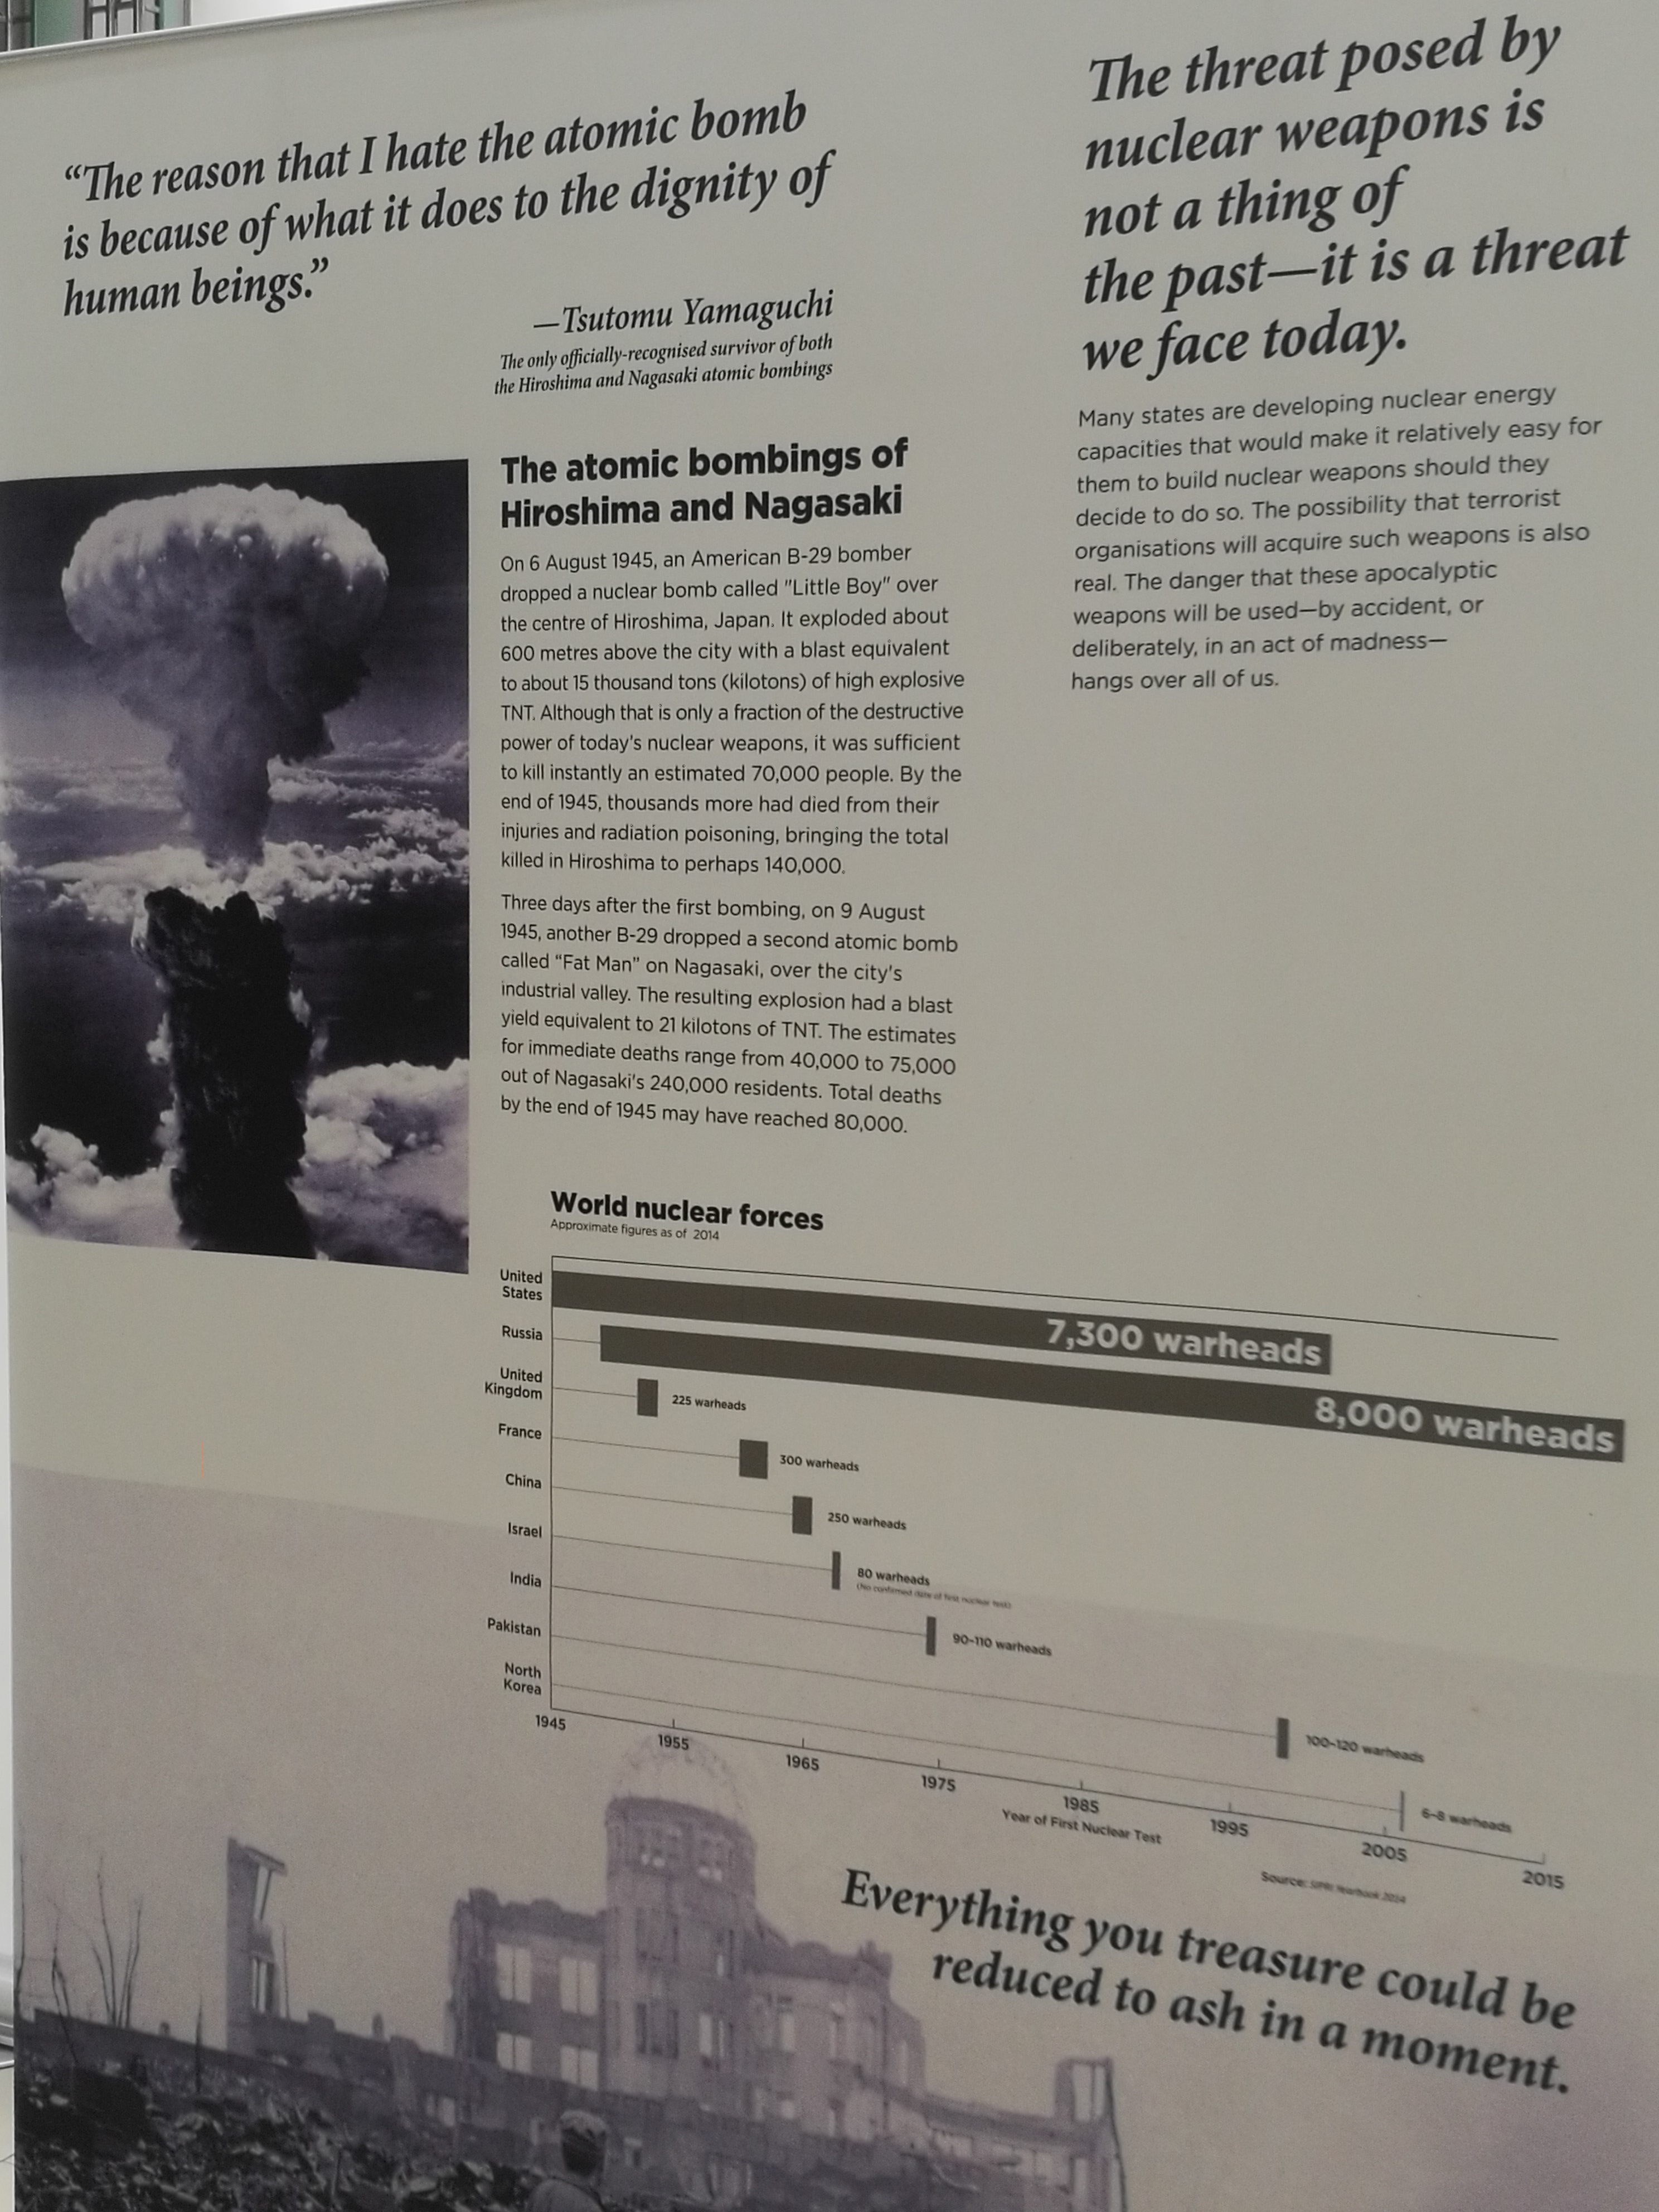 the atomic bomb called little boy